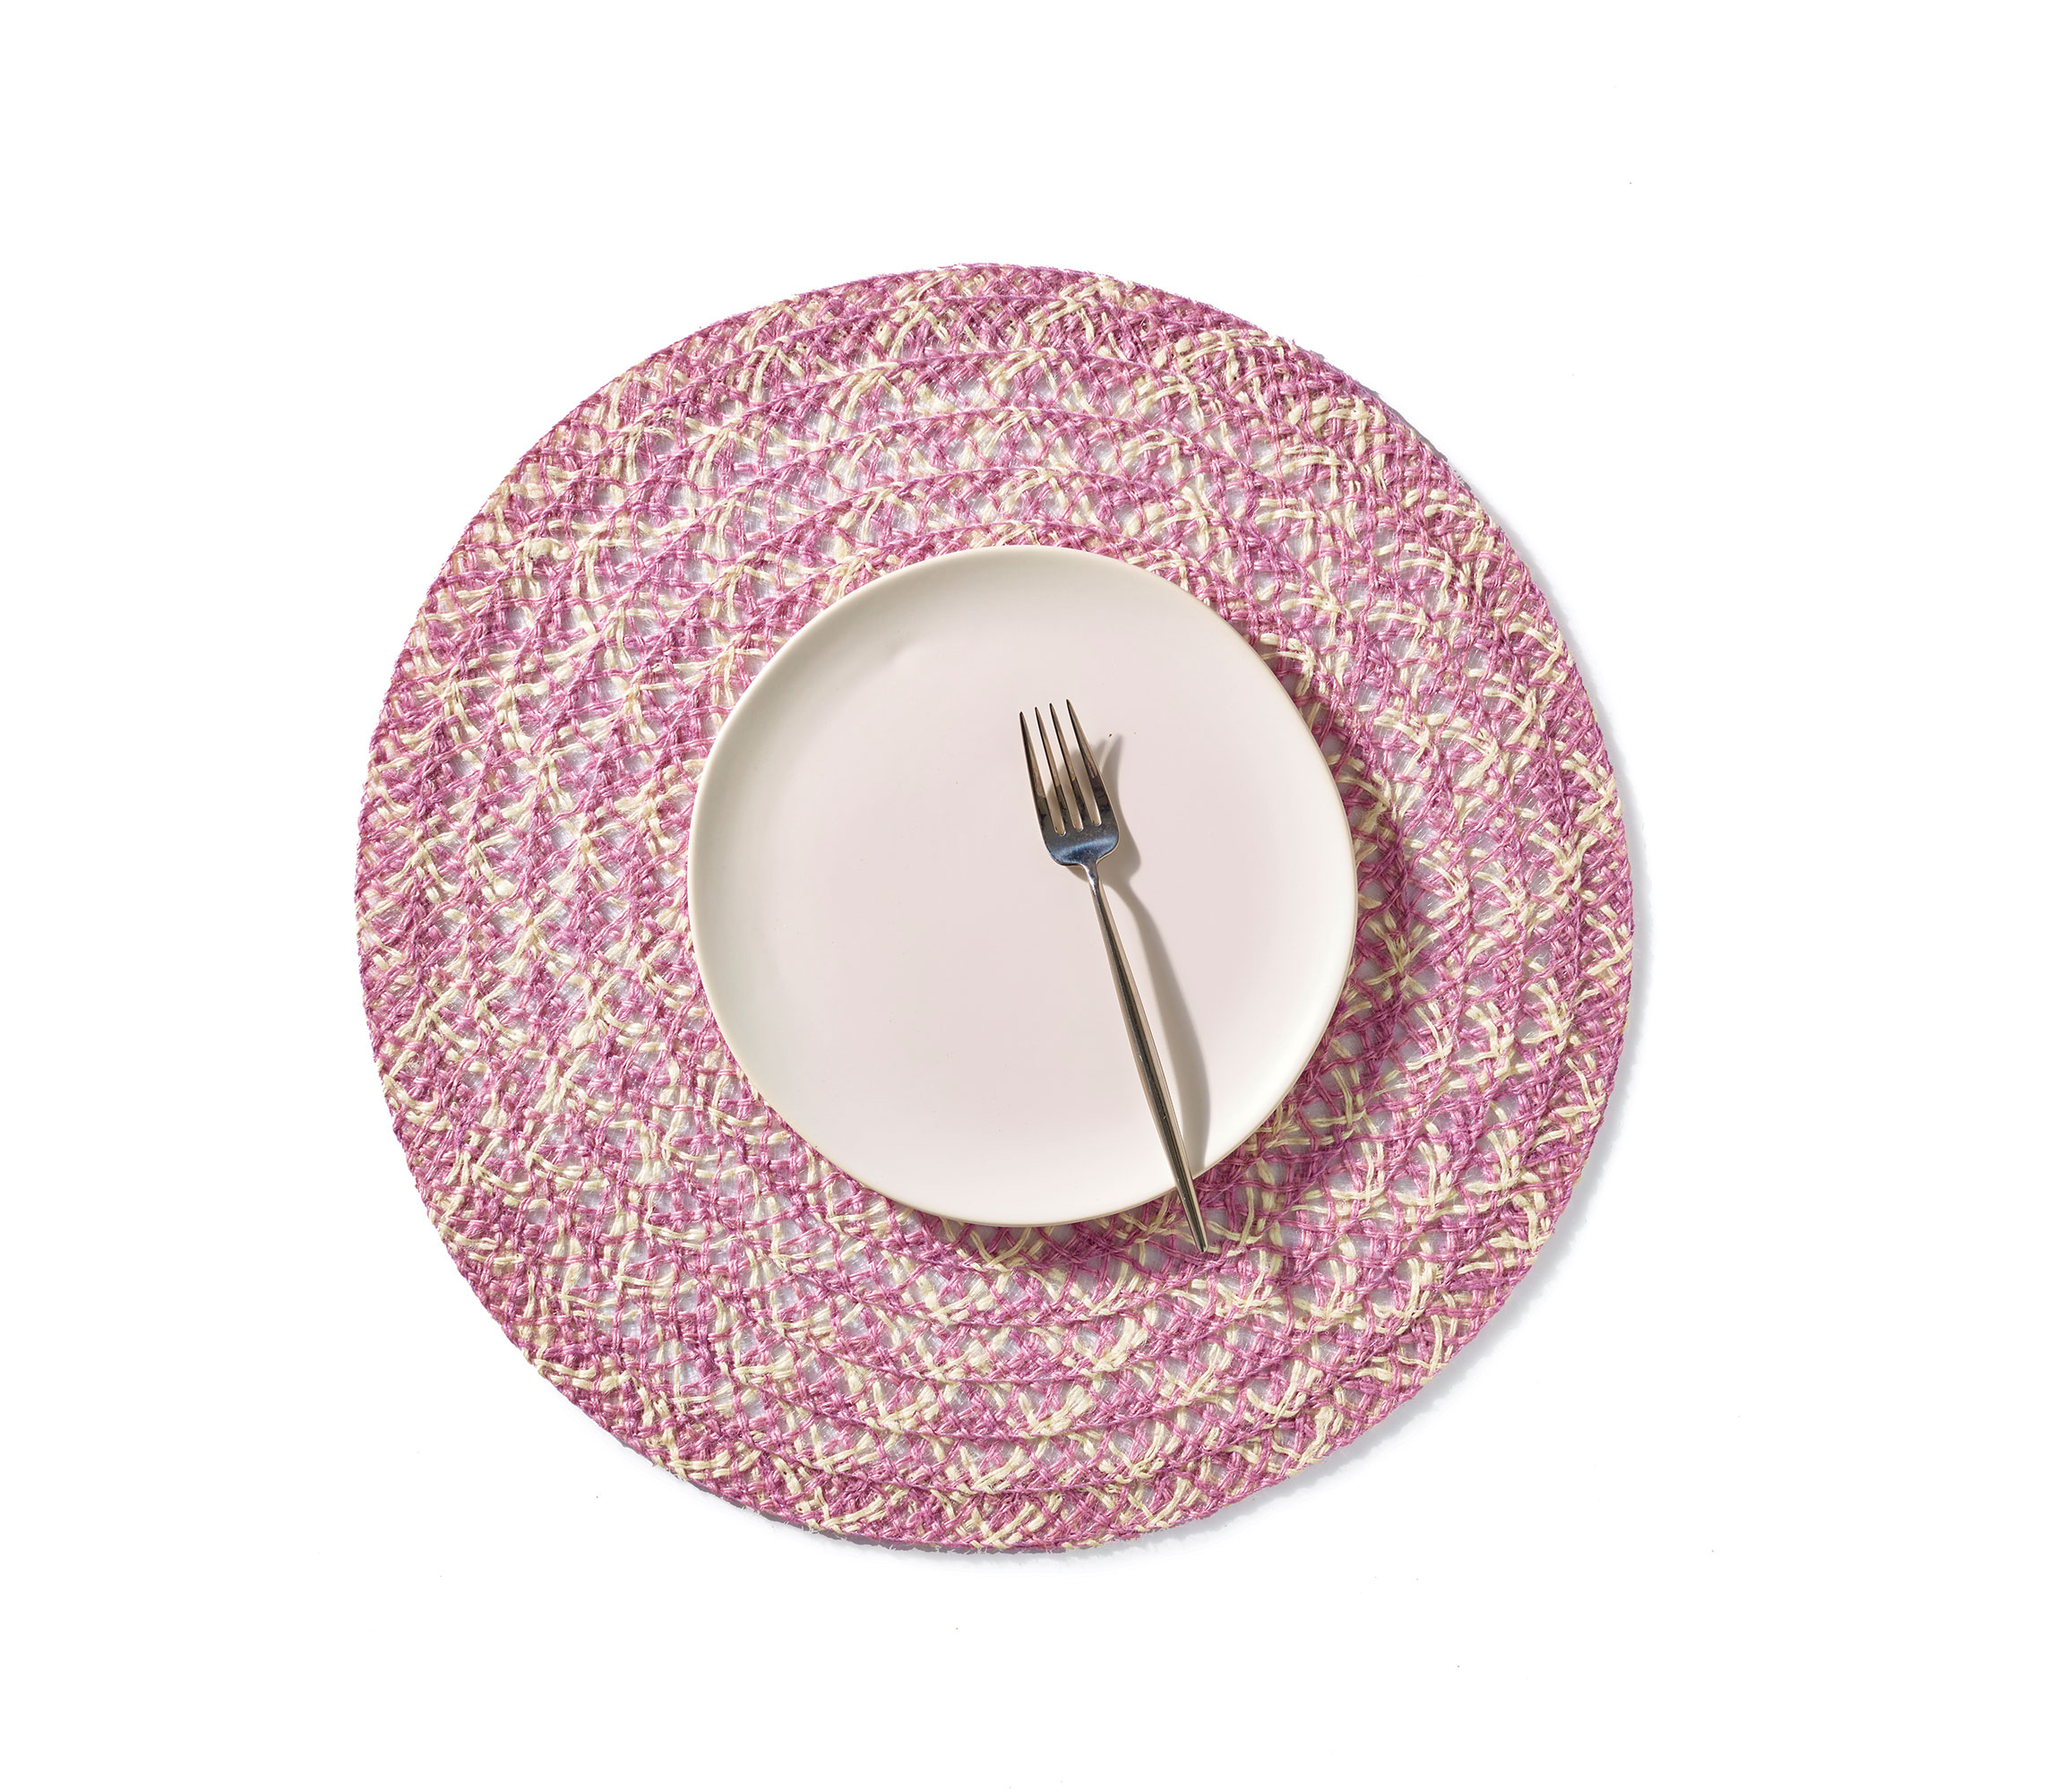 Garden Braided Placemats